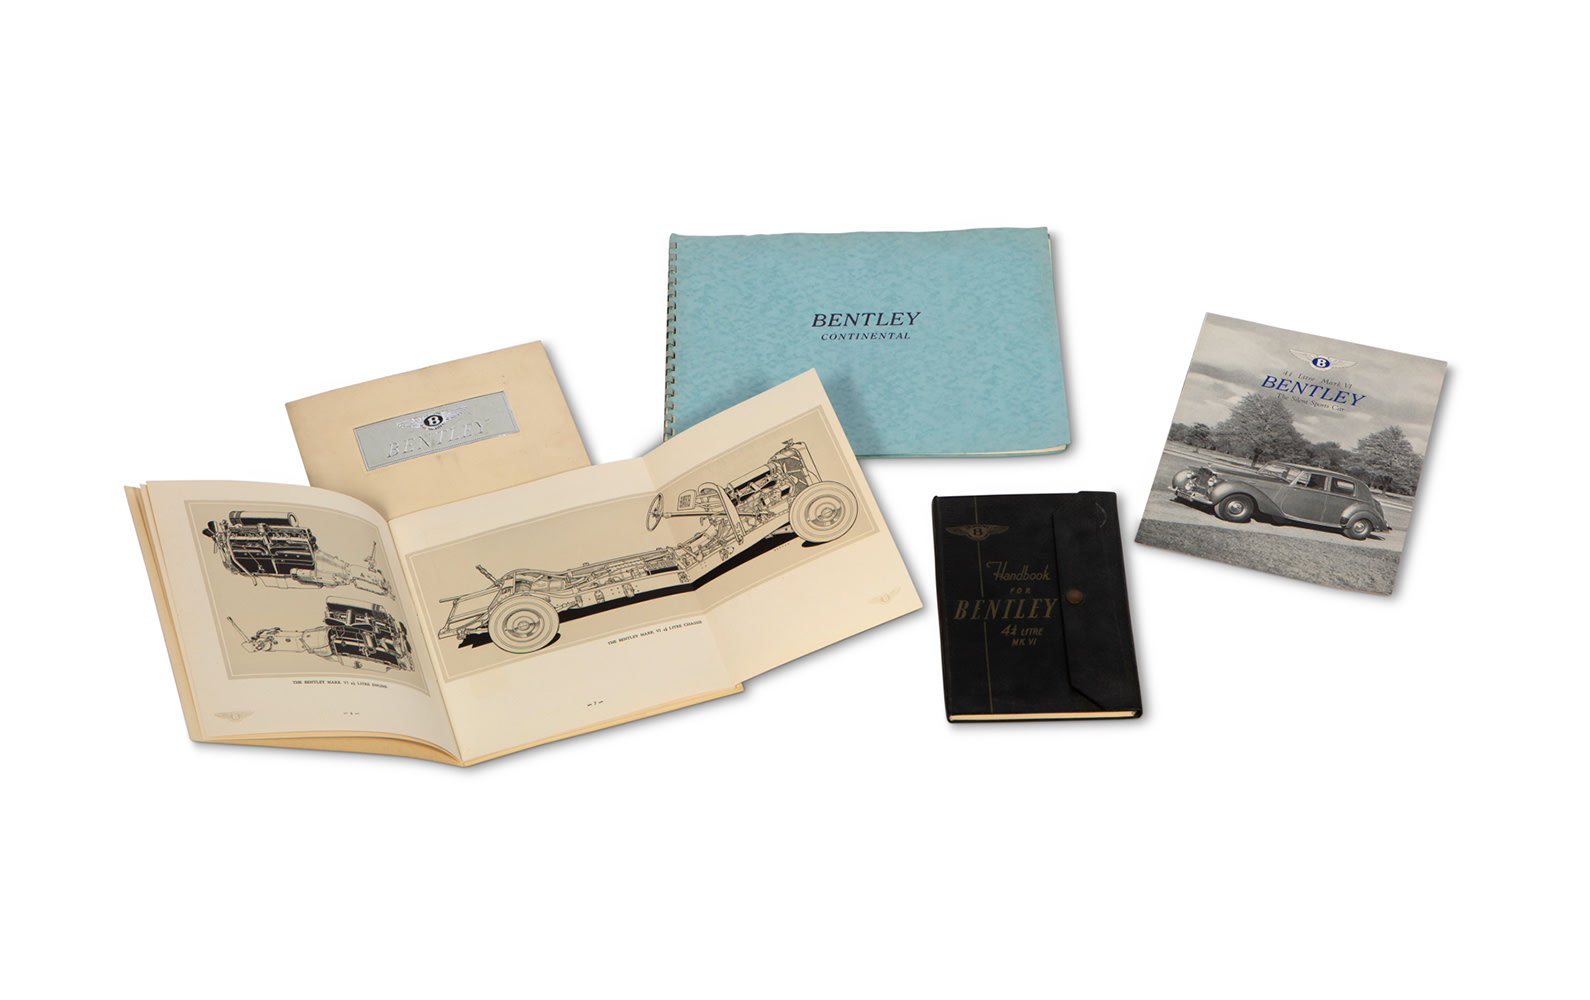 Bentley Literature for Mk VI and S2 Continental Models